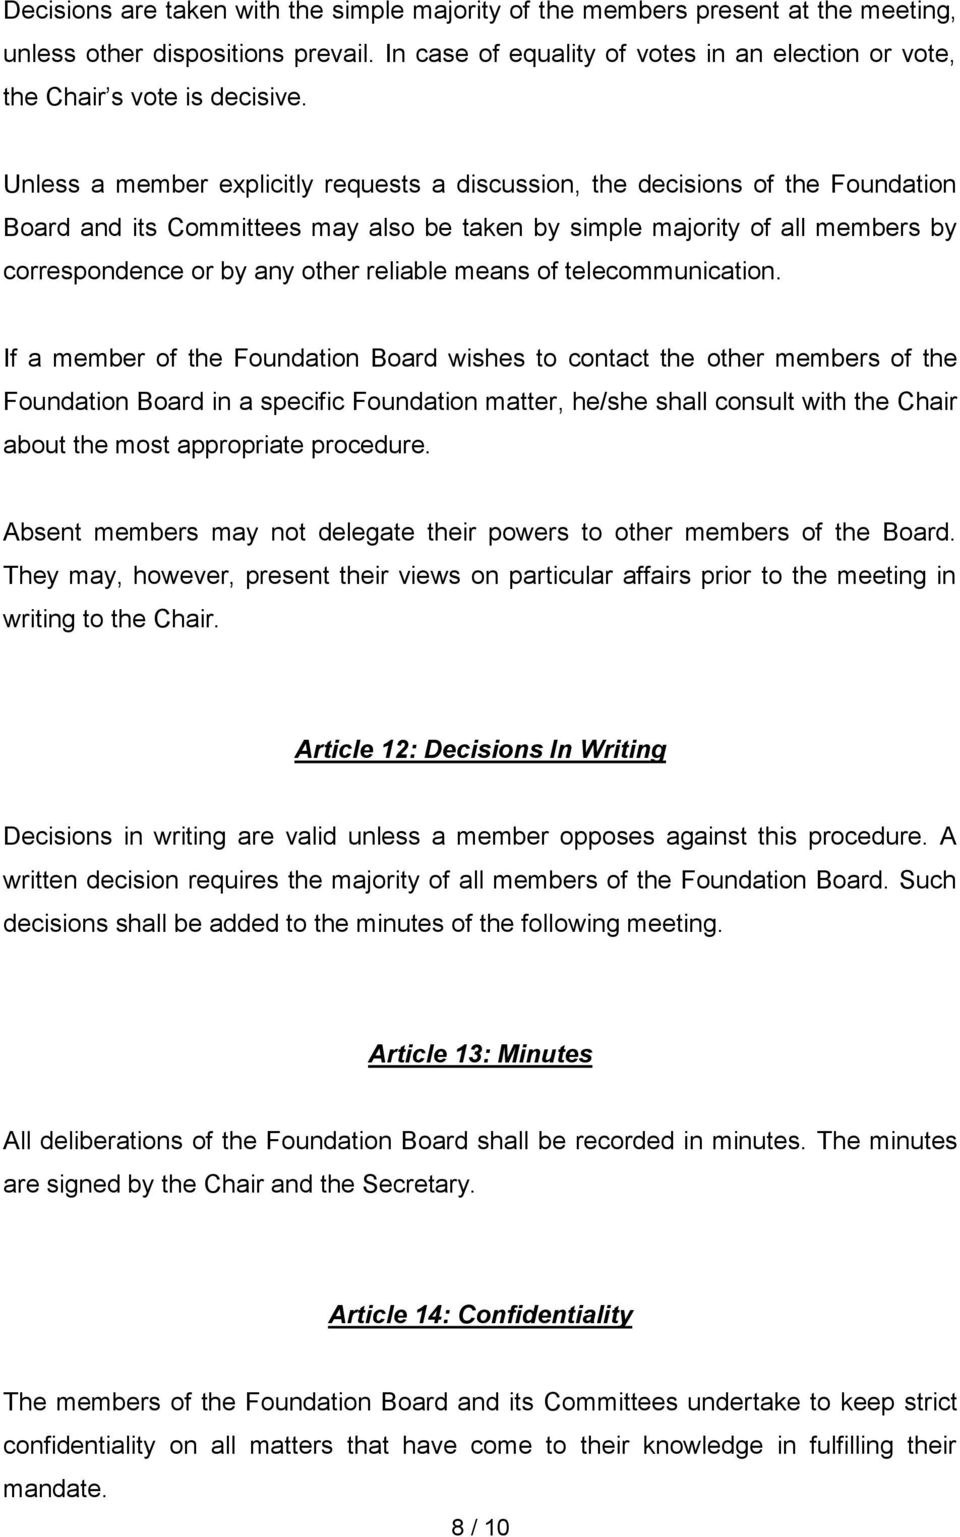 Unless a member explicitly requests a discussion, the decisions of the Foundation Board and its Committees may also be taken by simple majority of all members by correspondence or by any other